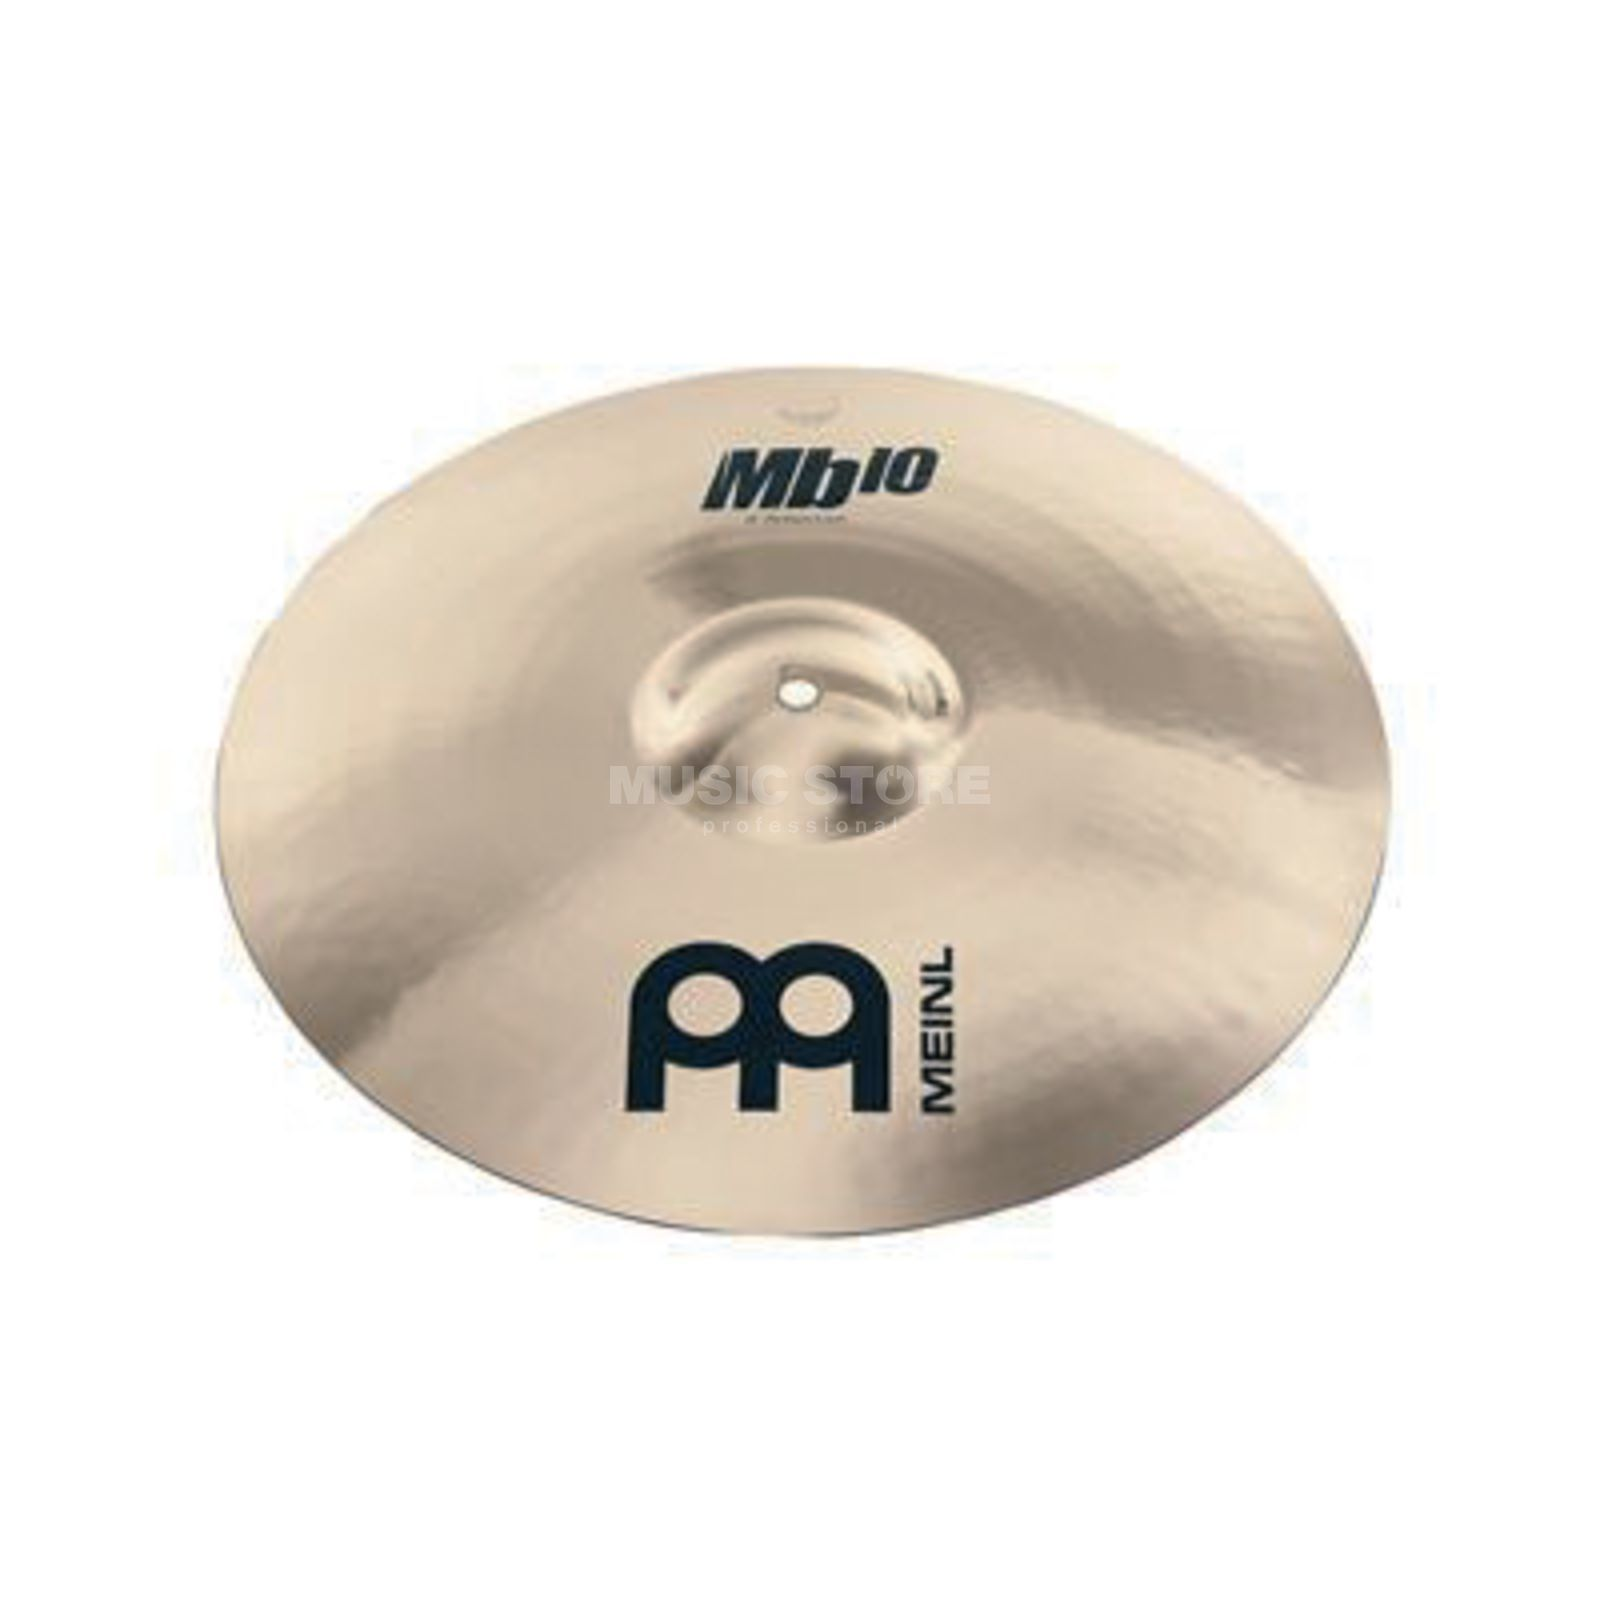 "Meinl MB10 Thin Crash 16"" MB10-16TC-B, finition brillante Image du produit"